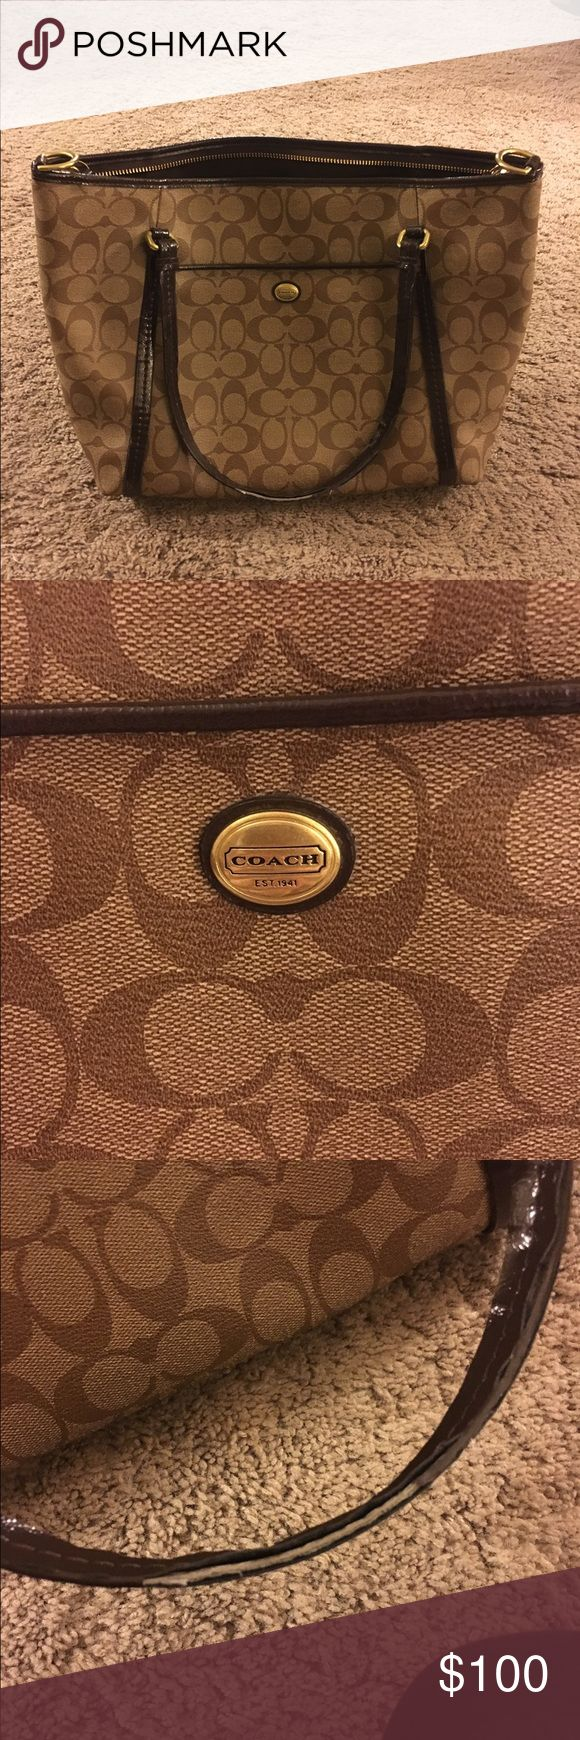 Authentic Coach Purse 👛 Authentic Bronze Coach Purse, it is in excellent shape and is very clean. The only thing that is not in perfect condition are the handles, they are a little beat up, but other than that mint condition. Coach Bags Totes